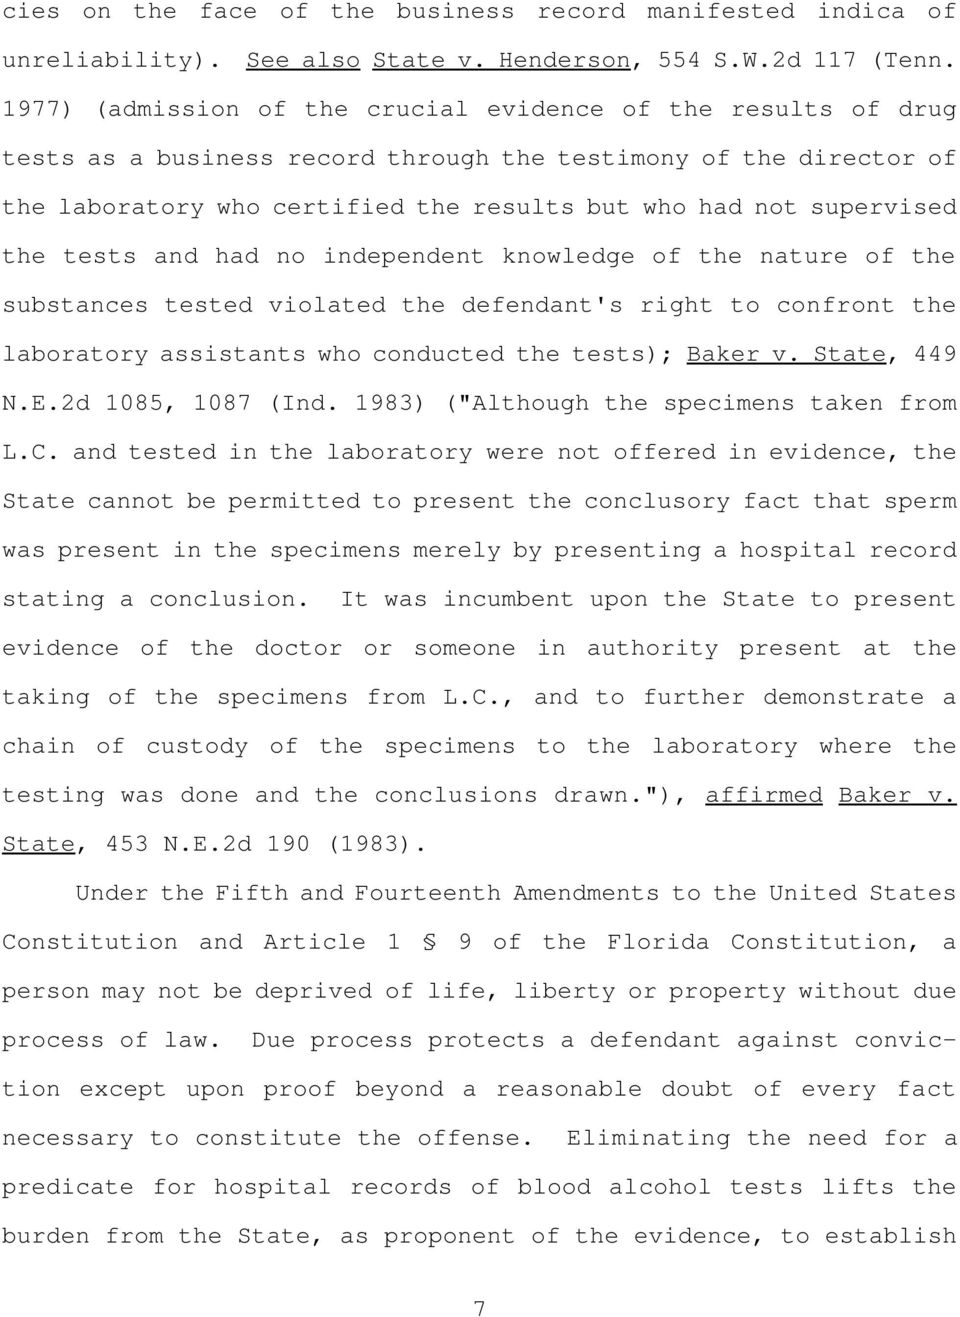 the tests and had no independent knowledge of the nature of the substances tested violated the defendant's right to confront the laboratory assistants who conducted the tests); Baker v. State, 449 N.